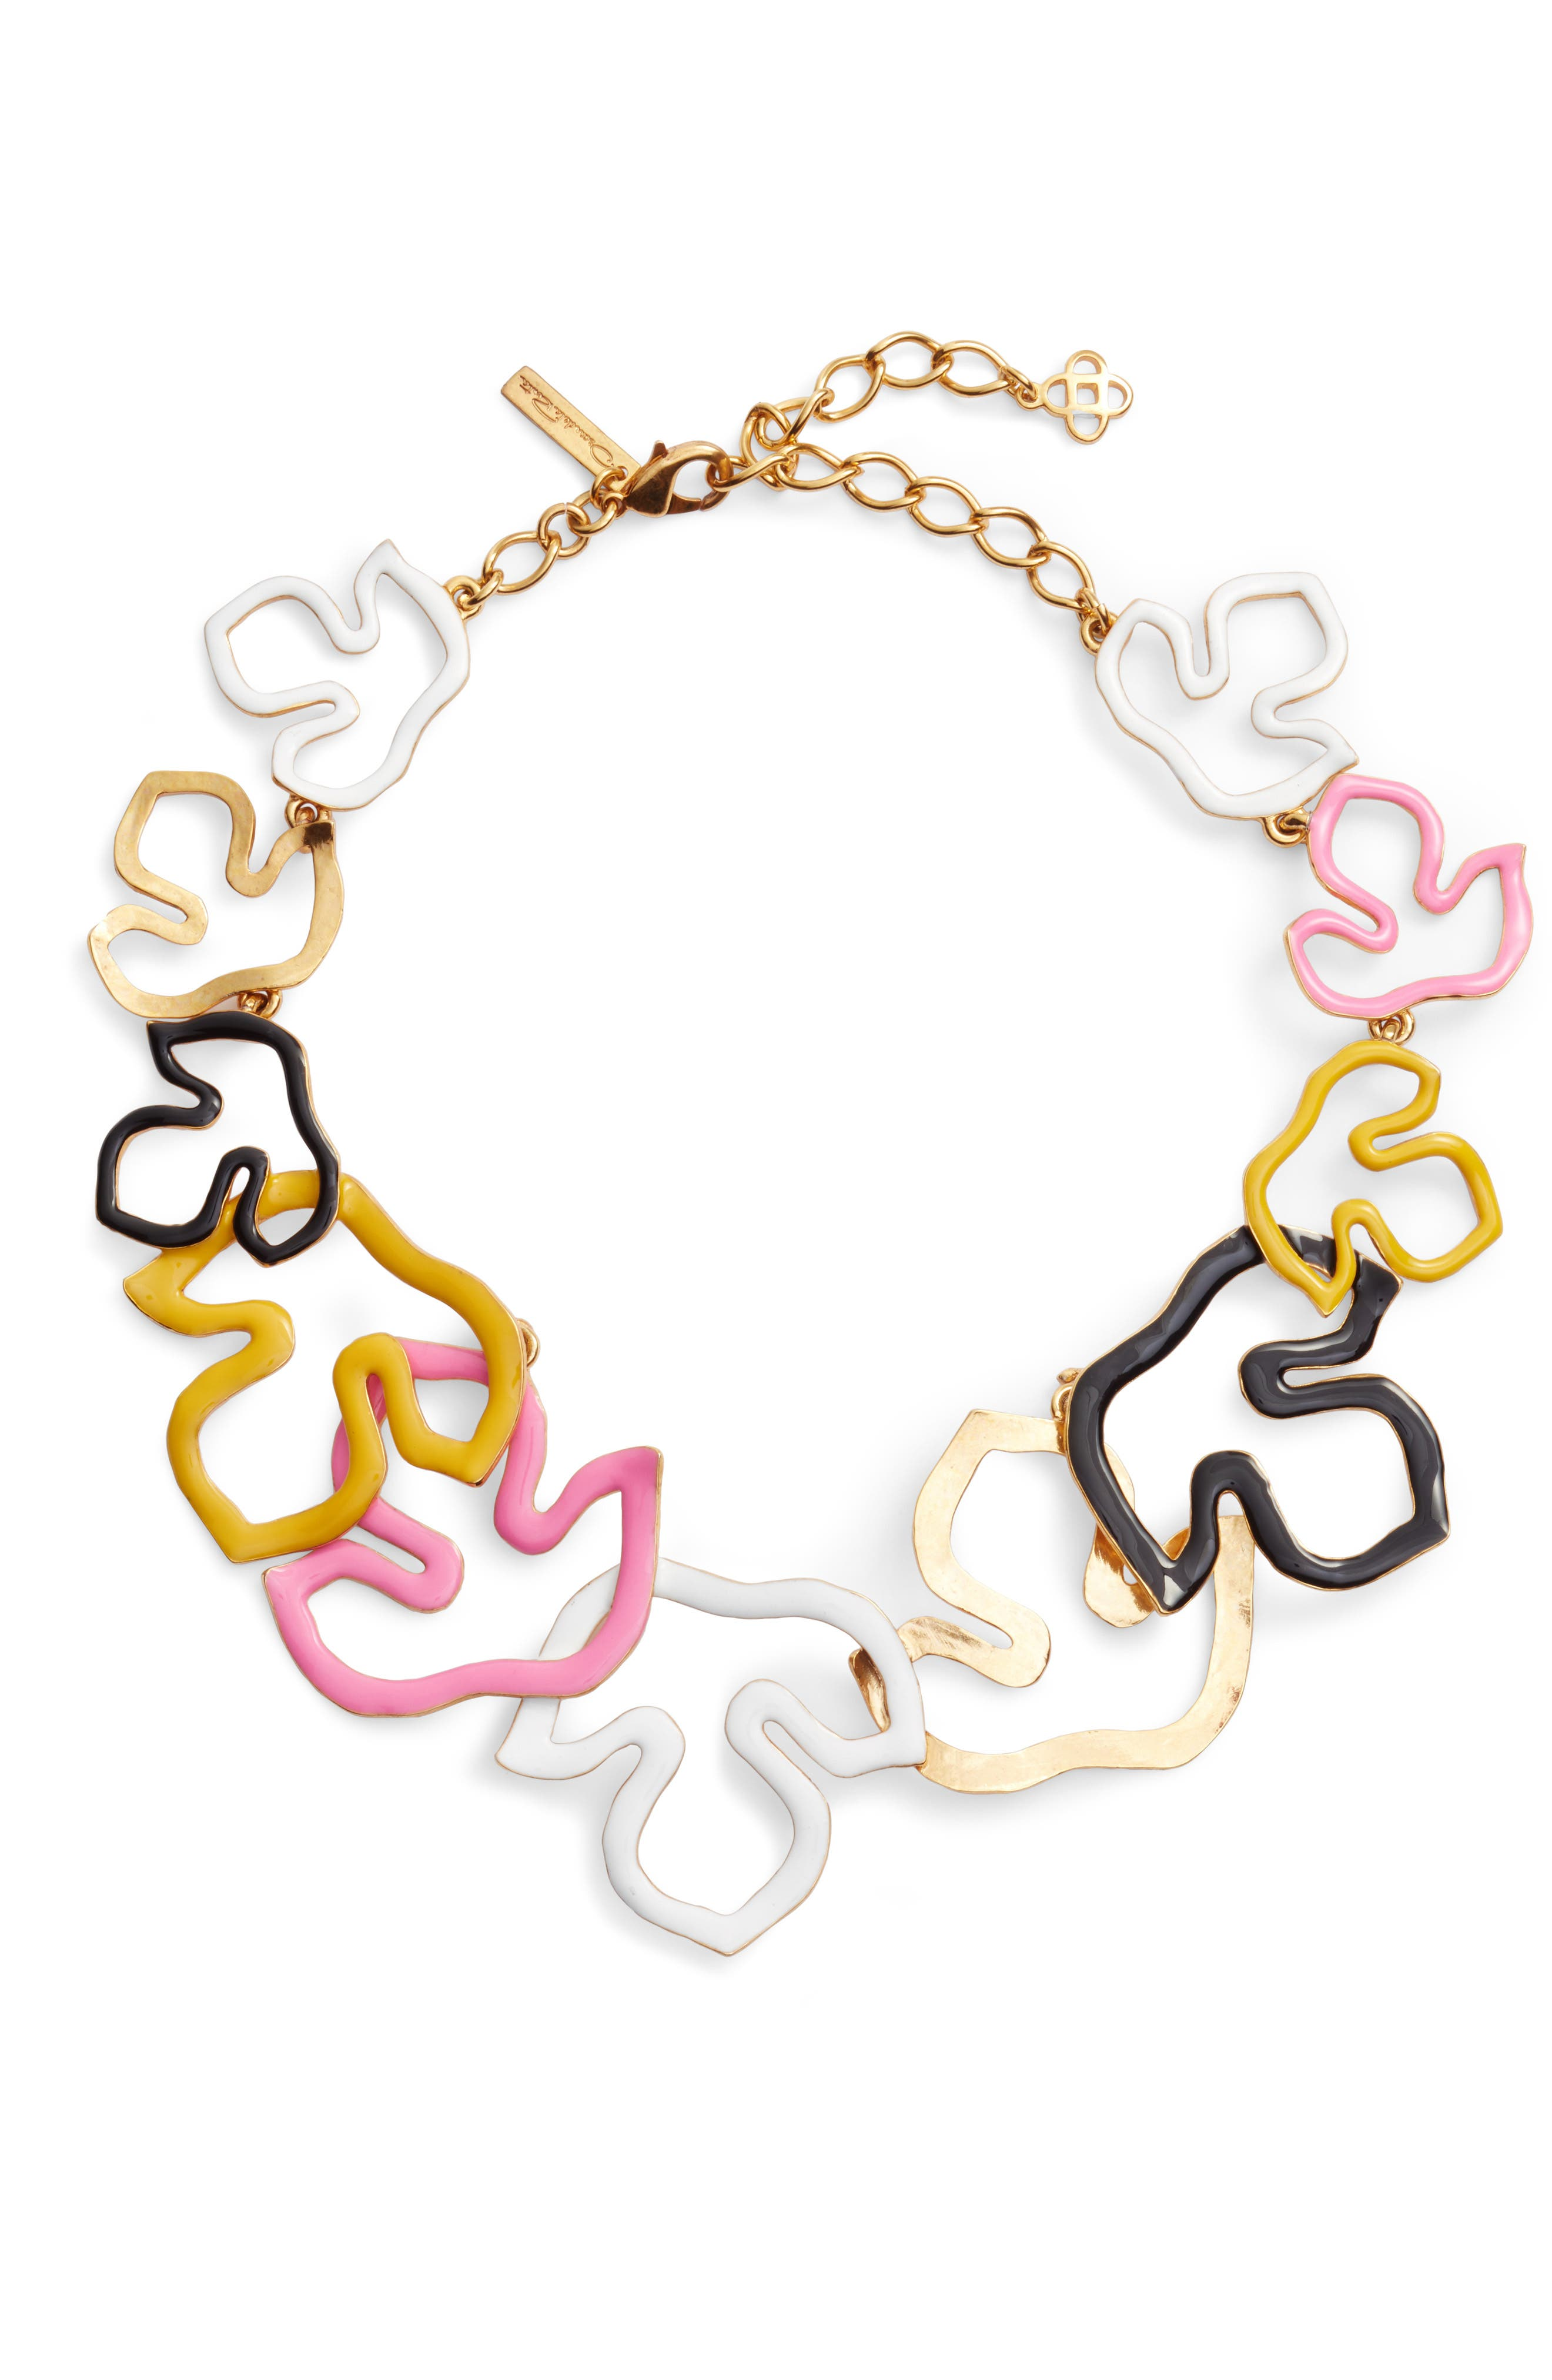 Openwork Collar Necklace,                             Main thumbnail 1, color,                             Multi/ Gold